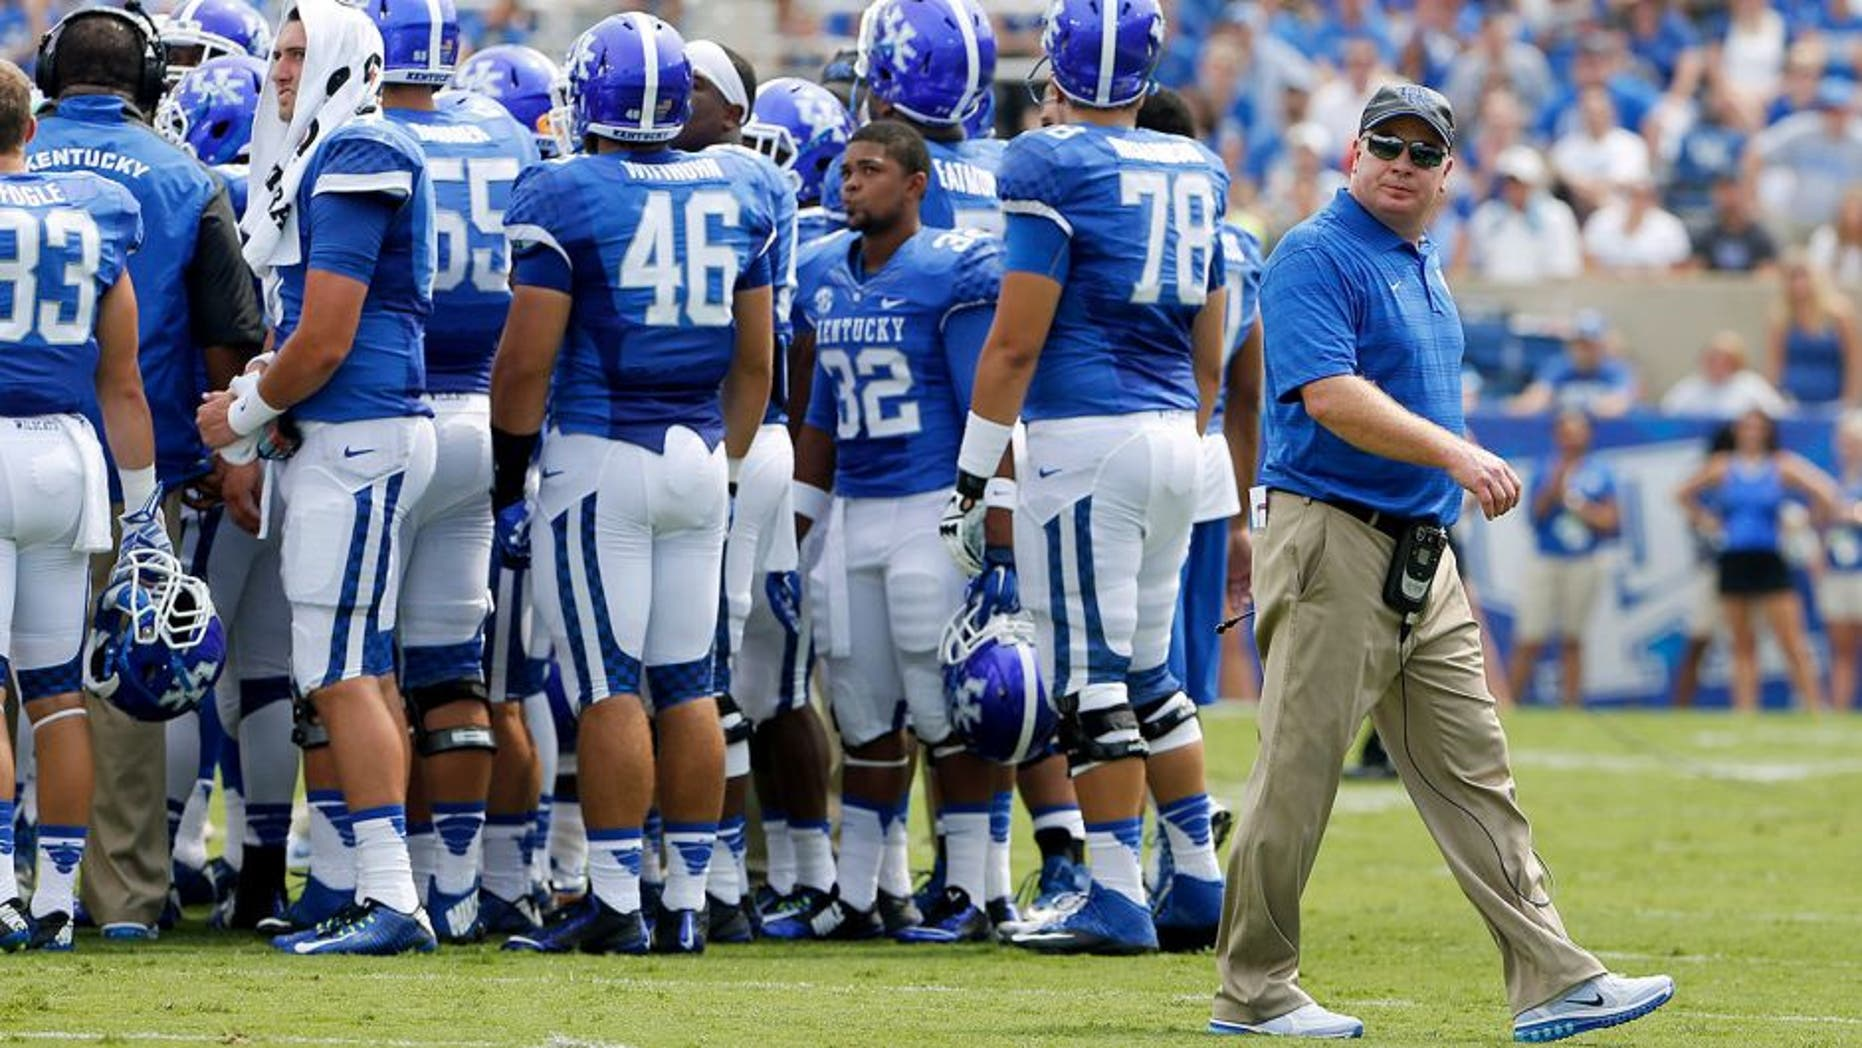 Aug 30, 2014; Lexington, KY, USA; Kentucky Wildcats head coach Mark Stoops during a time out in the game against the UT Martin Skyhawks in the second half at Commonwealth Stadium. Kentucky defeated UT Martin 59-14. Mandatory Credit: Mark Zerof-USA TODAY Sports